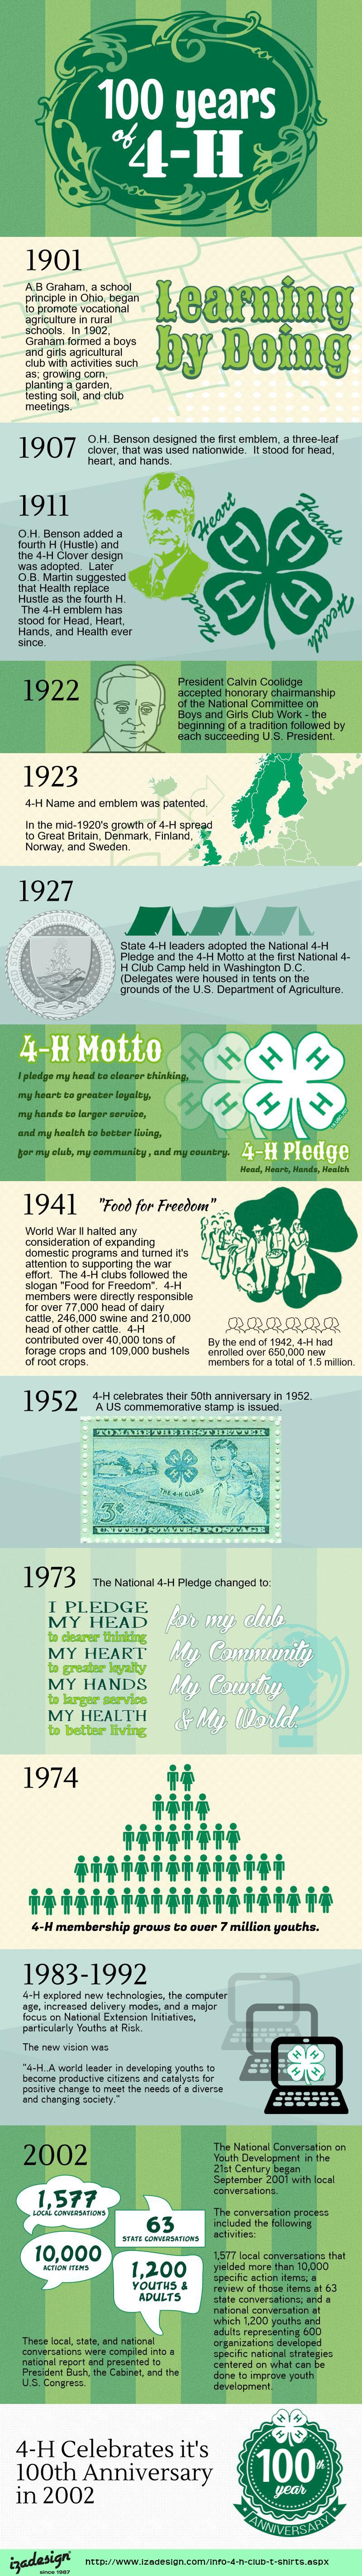 4H - 100 Years of 4H 1902-2002 Infographic